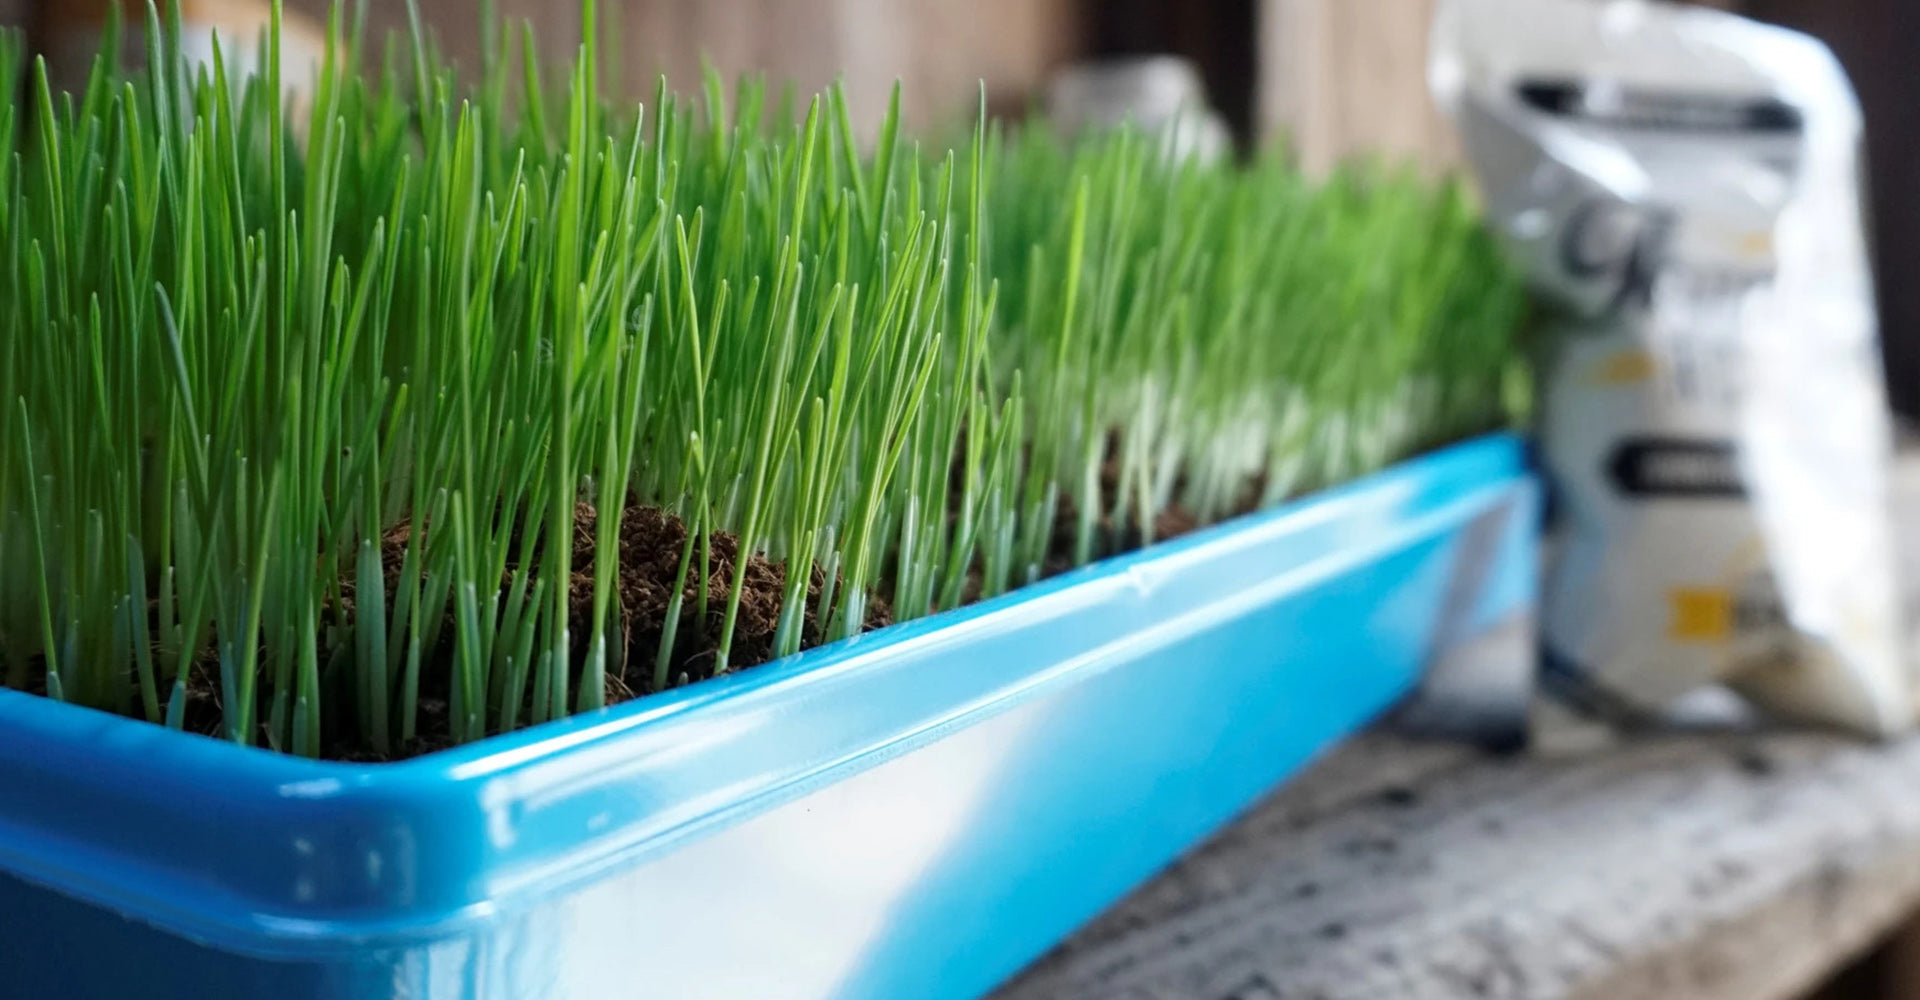 Thunder Acre wheat grass in a growing tray